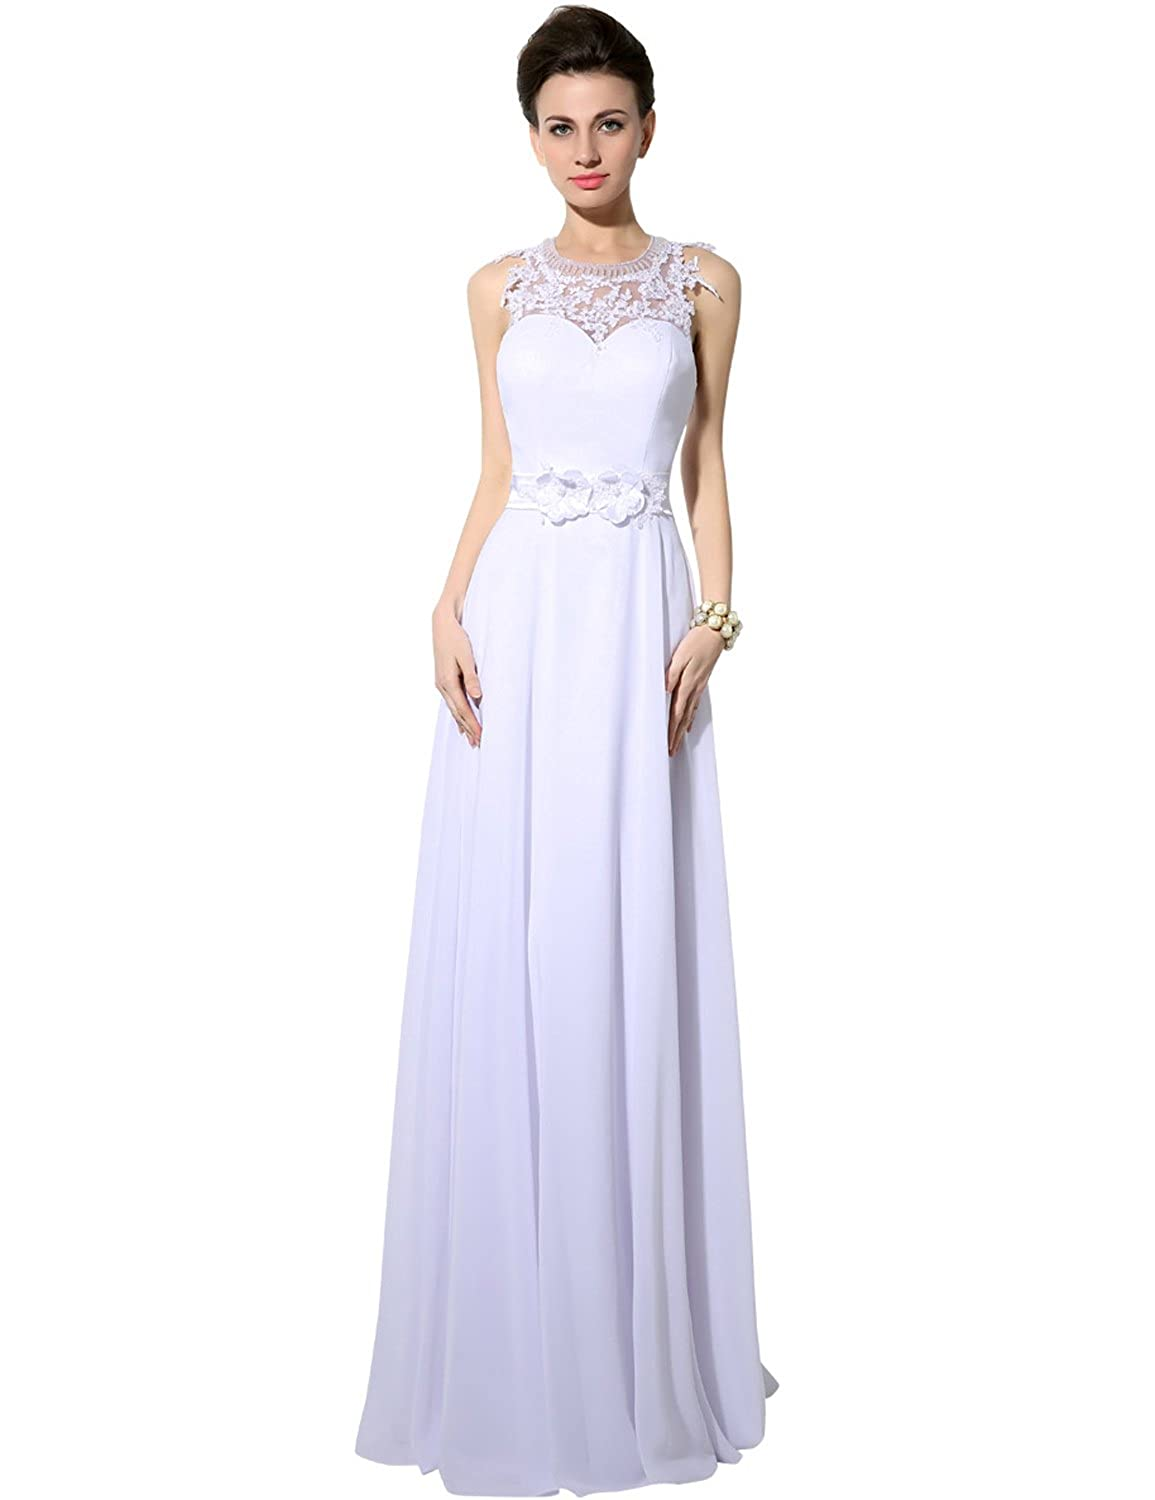 Clearbridal Women's O-neck White Long Prom Evening Dresses CSD214